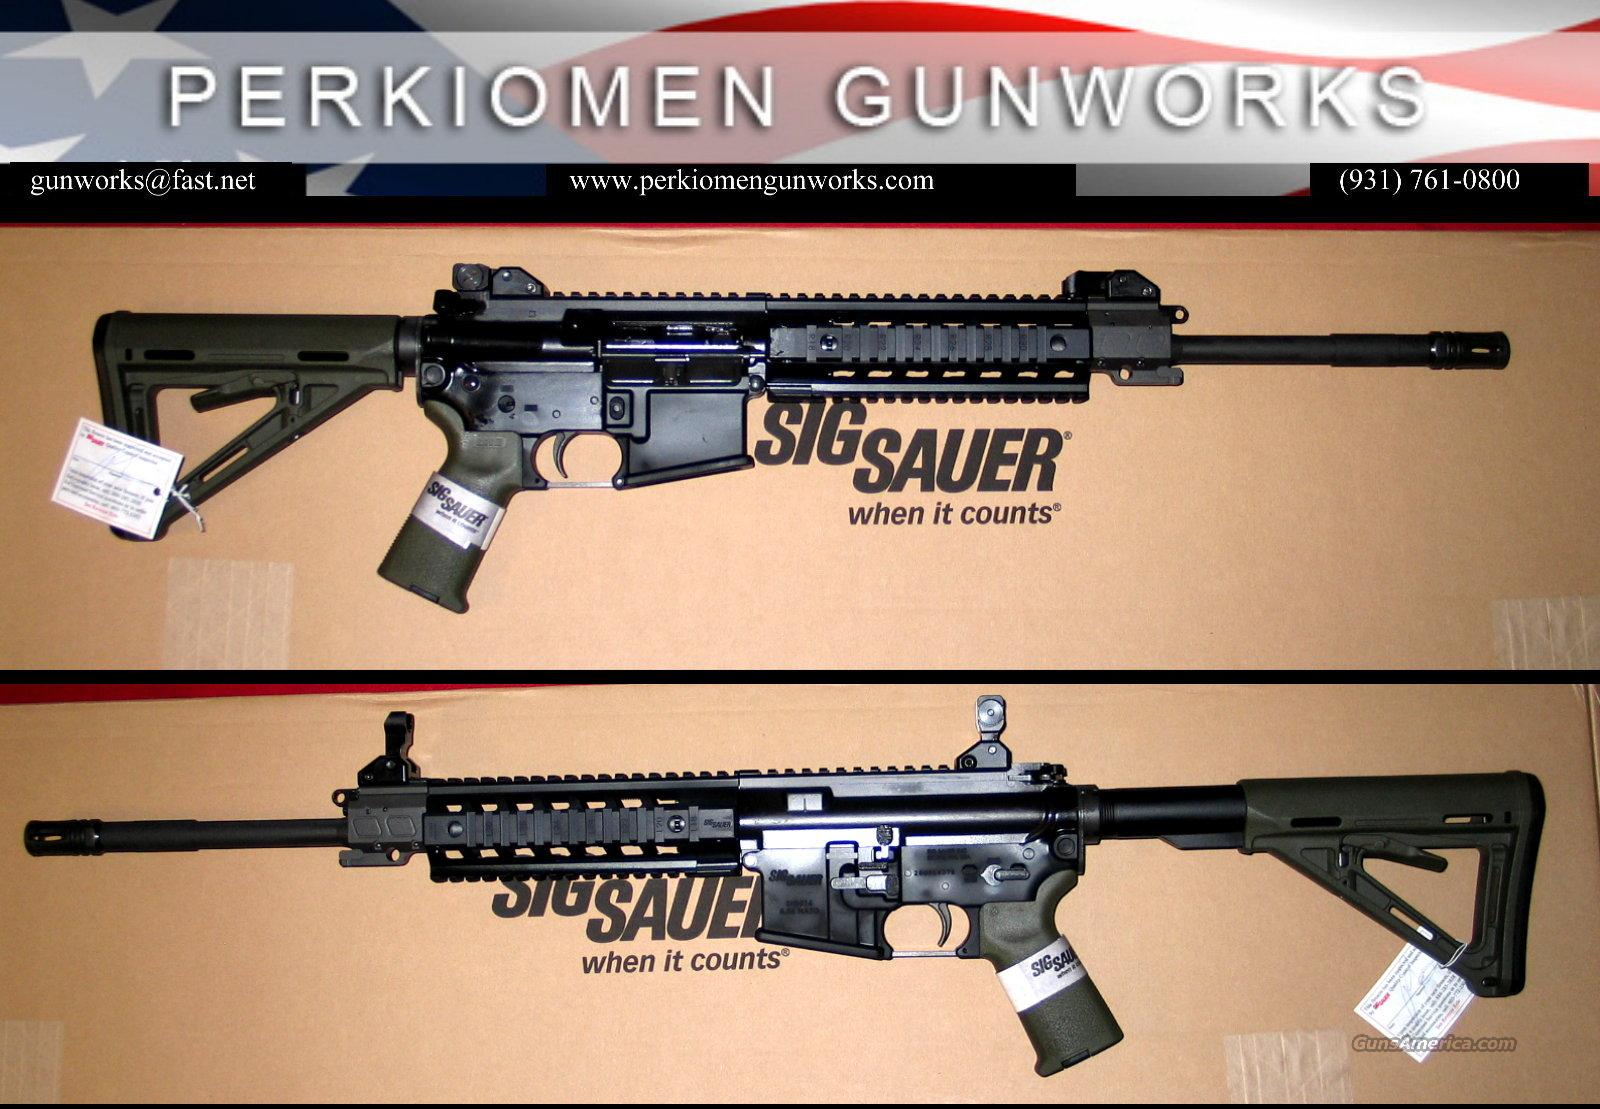 516 Patrol Gen 2, 5.56, ODG Grip & Stock-New in Box  Guns > Rifles > Sig - Sauer/Sigarms Rifles